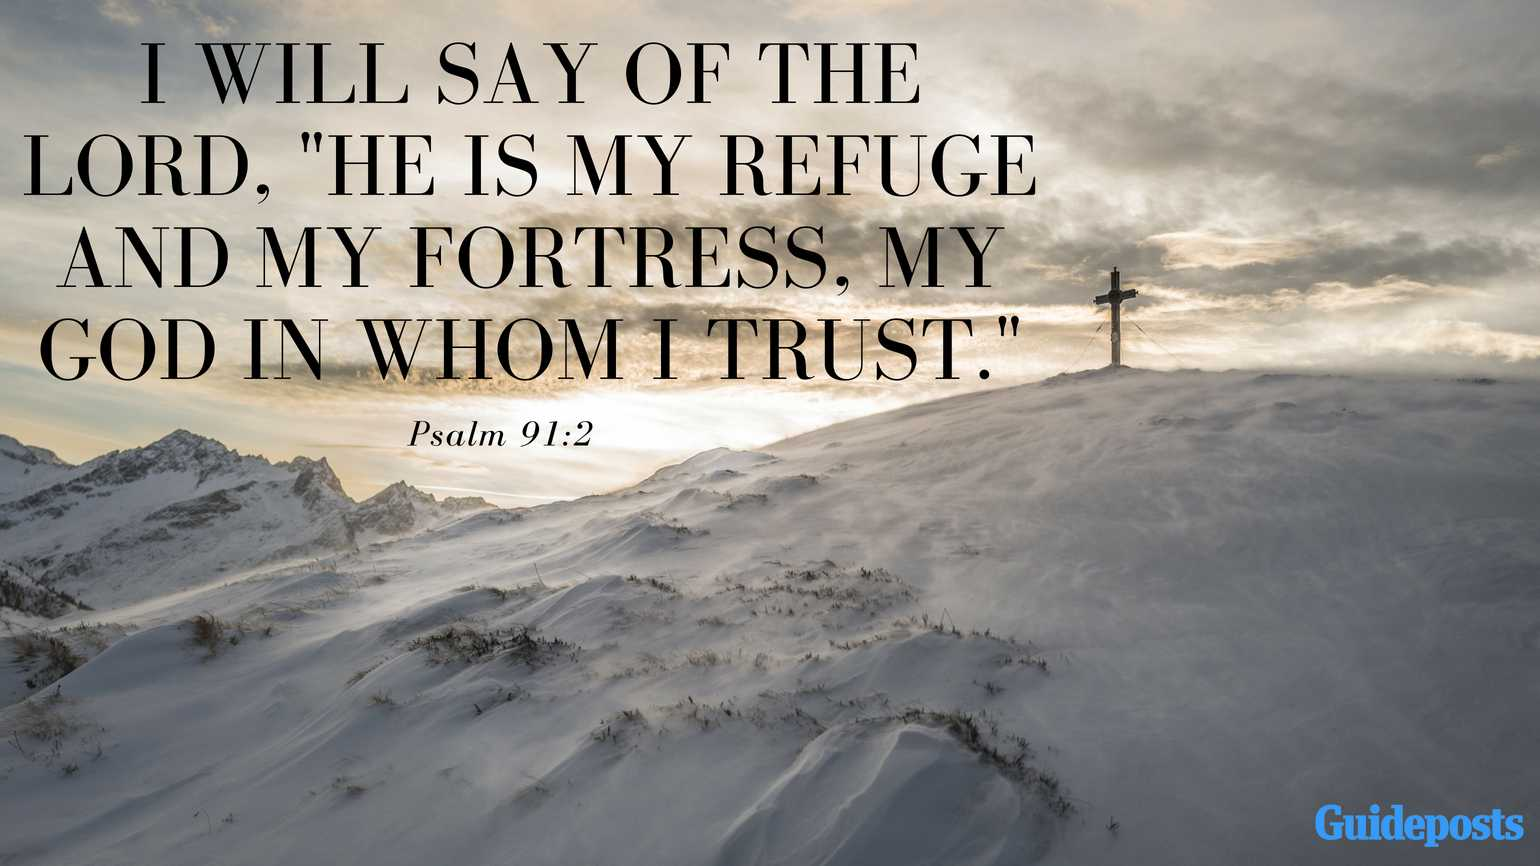 11 Bible Verses for Those Facing Natural Disasters | Guideposts